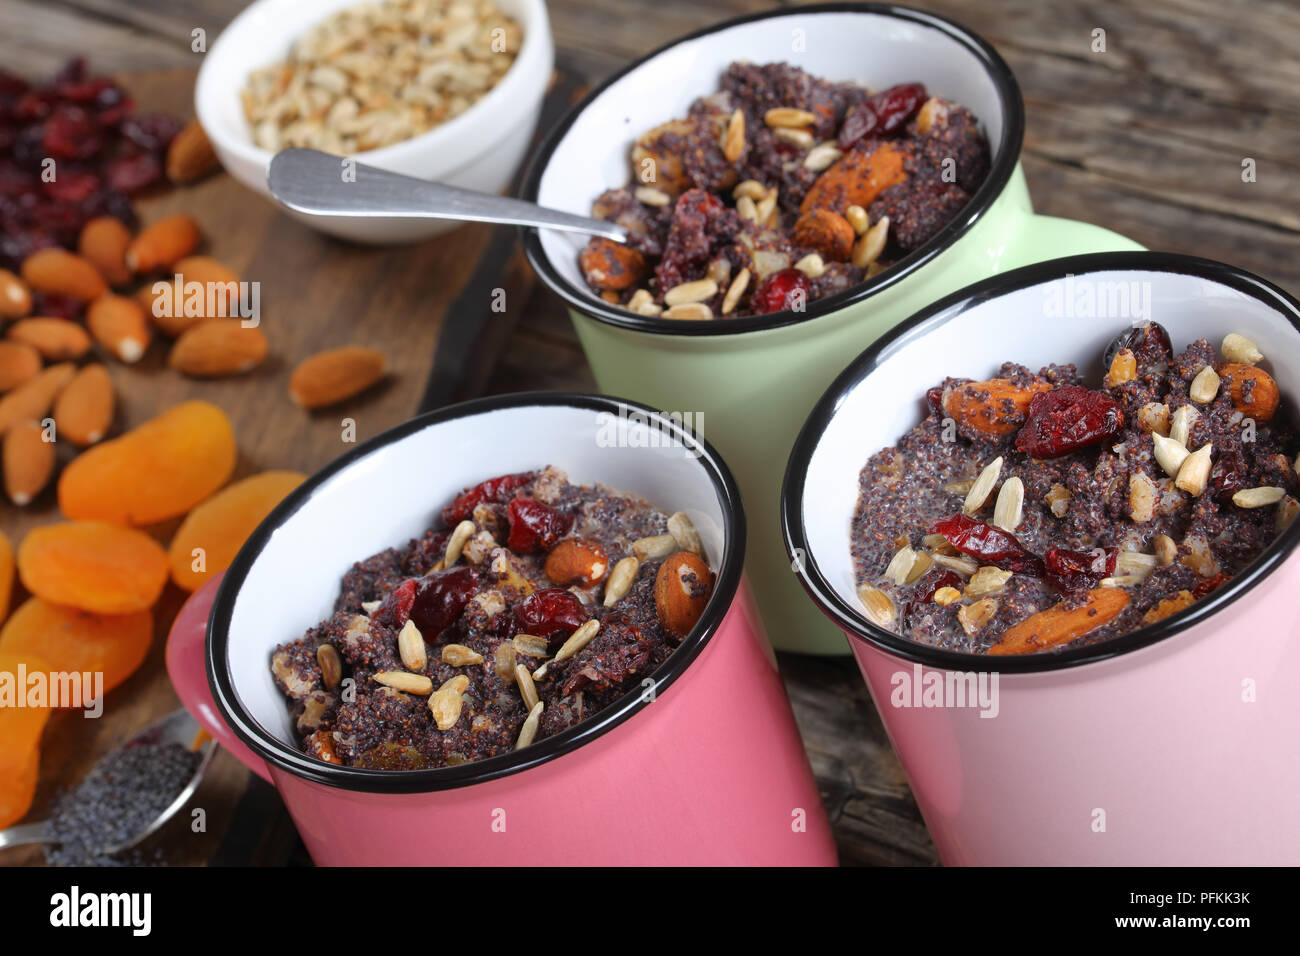 close-up of delicious christmas dessert or kutia of poppy seeds mixed with cooked whole wheat, dried fruits and nuts served in cups, view from above - Stock Image